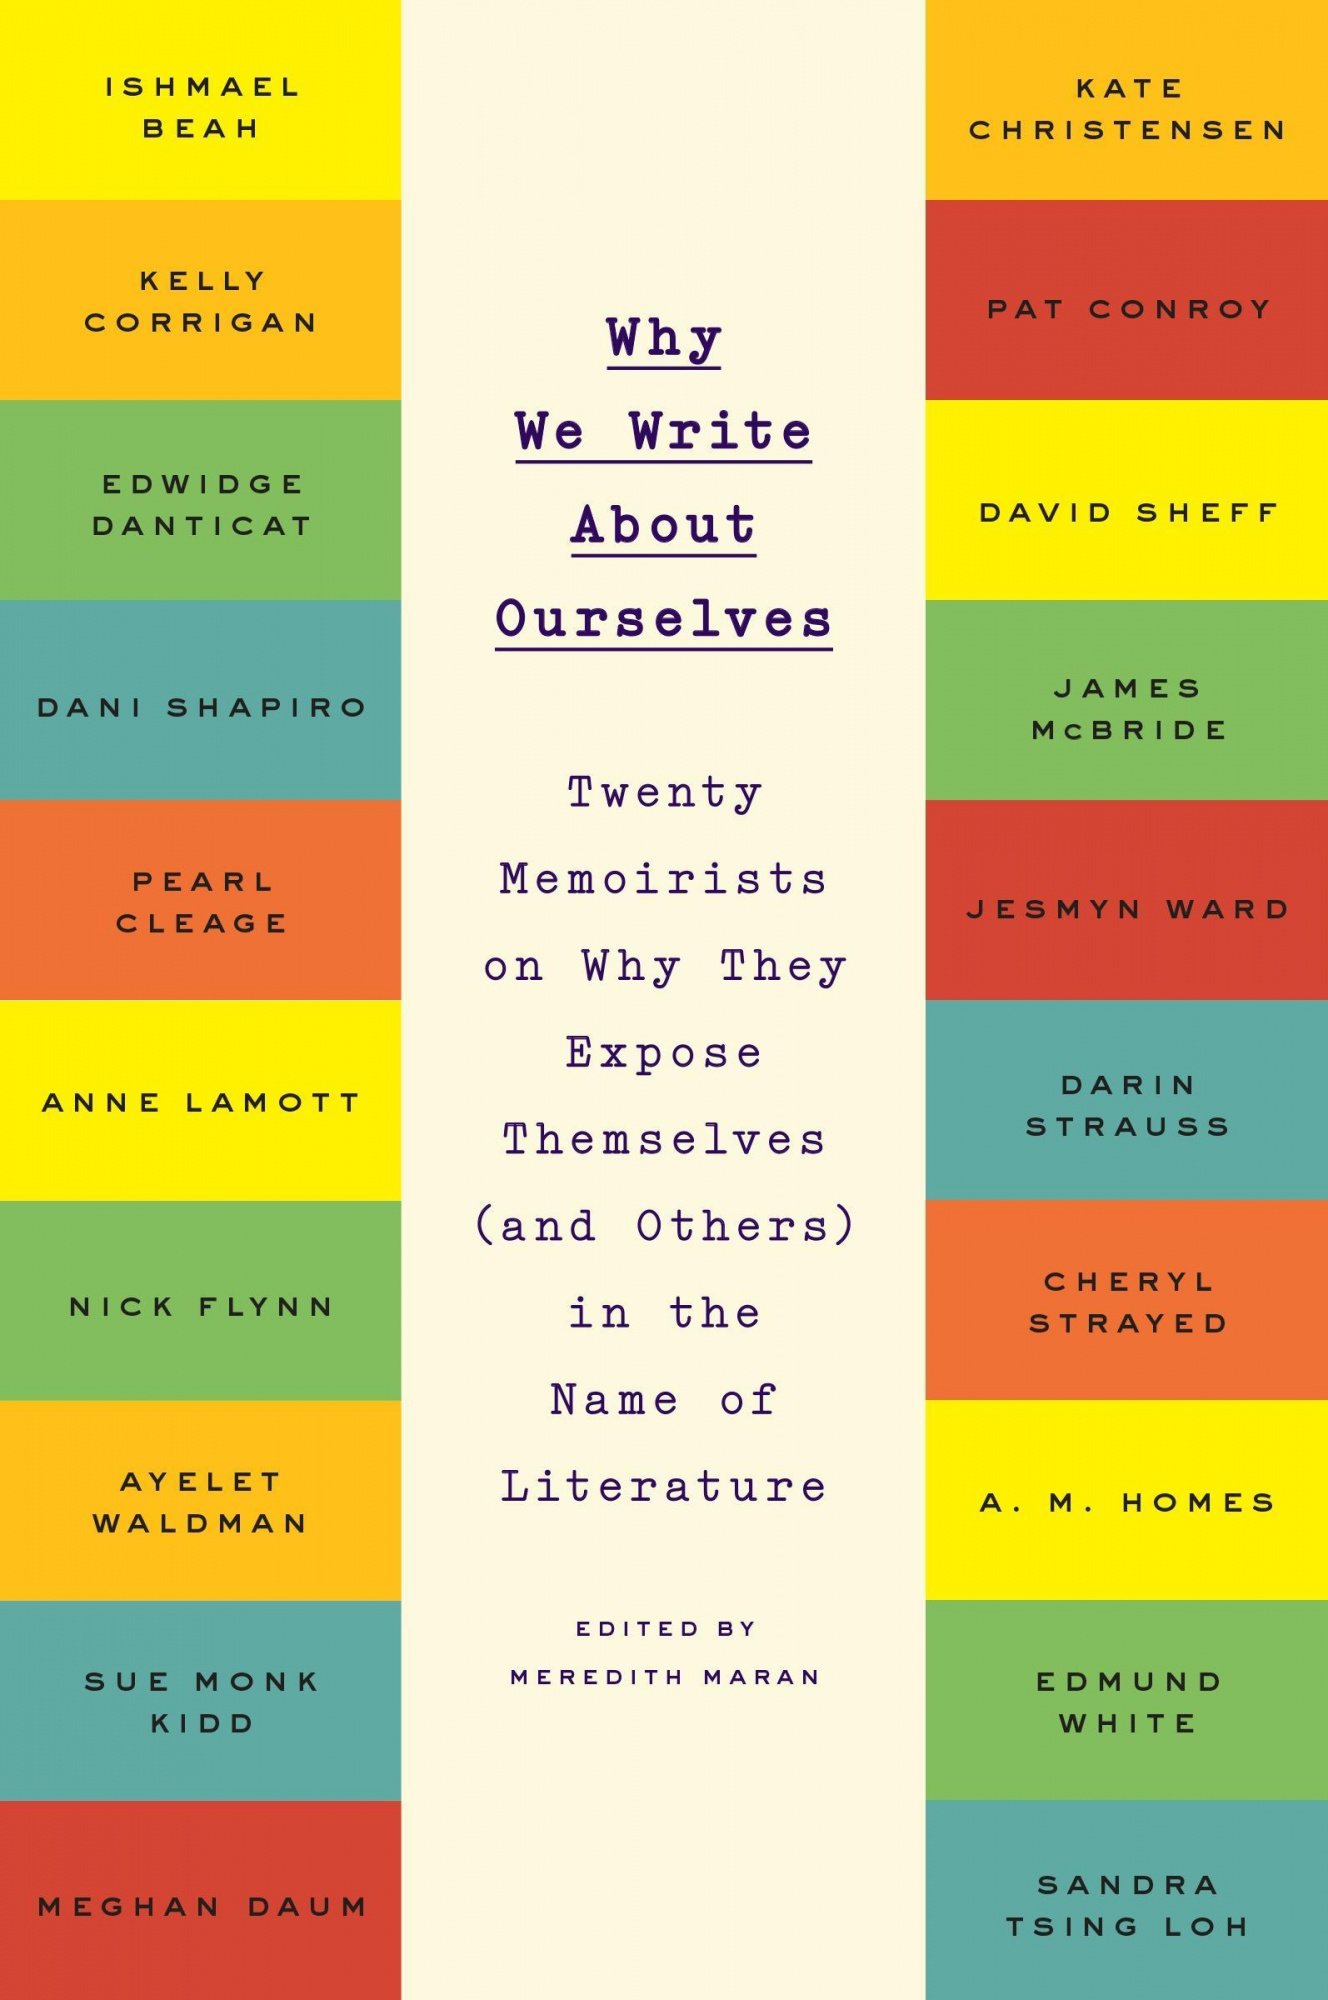 Why We Write about Ourselves: Twenty Memoirists on Why They Expose Themselves (and Others) in the Name of Literature by Meredith Maran, ISBN: 9780142181973